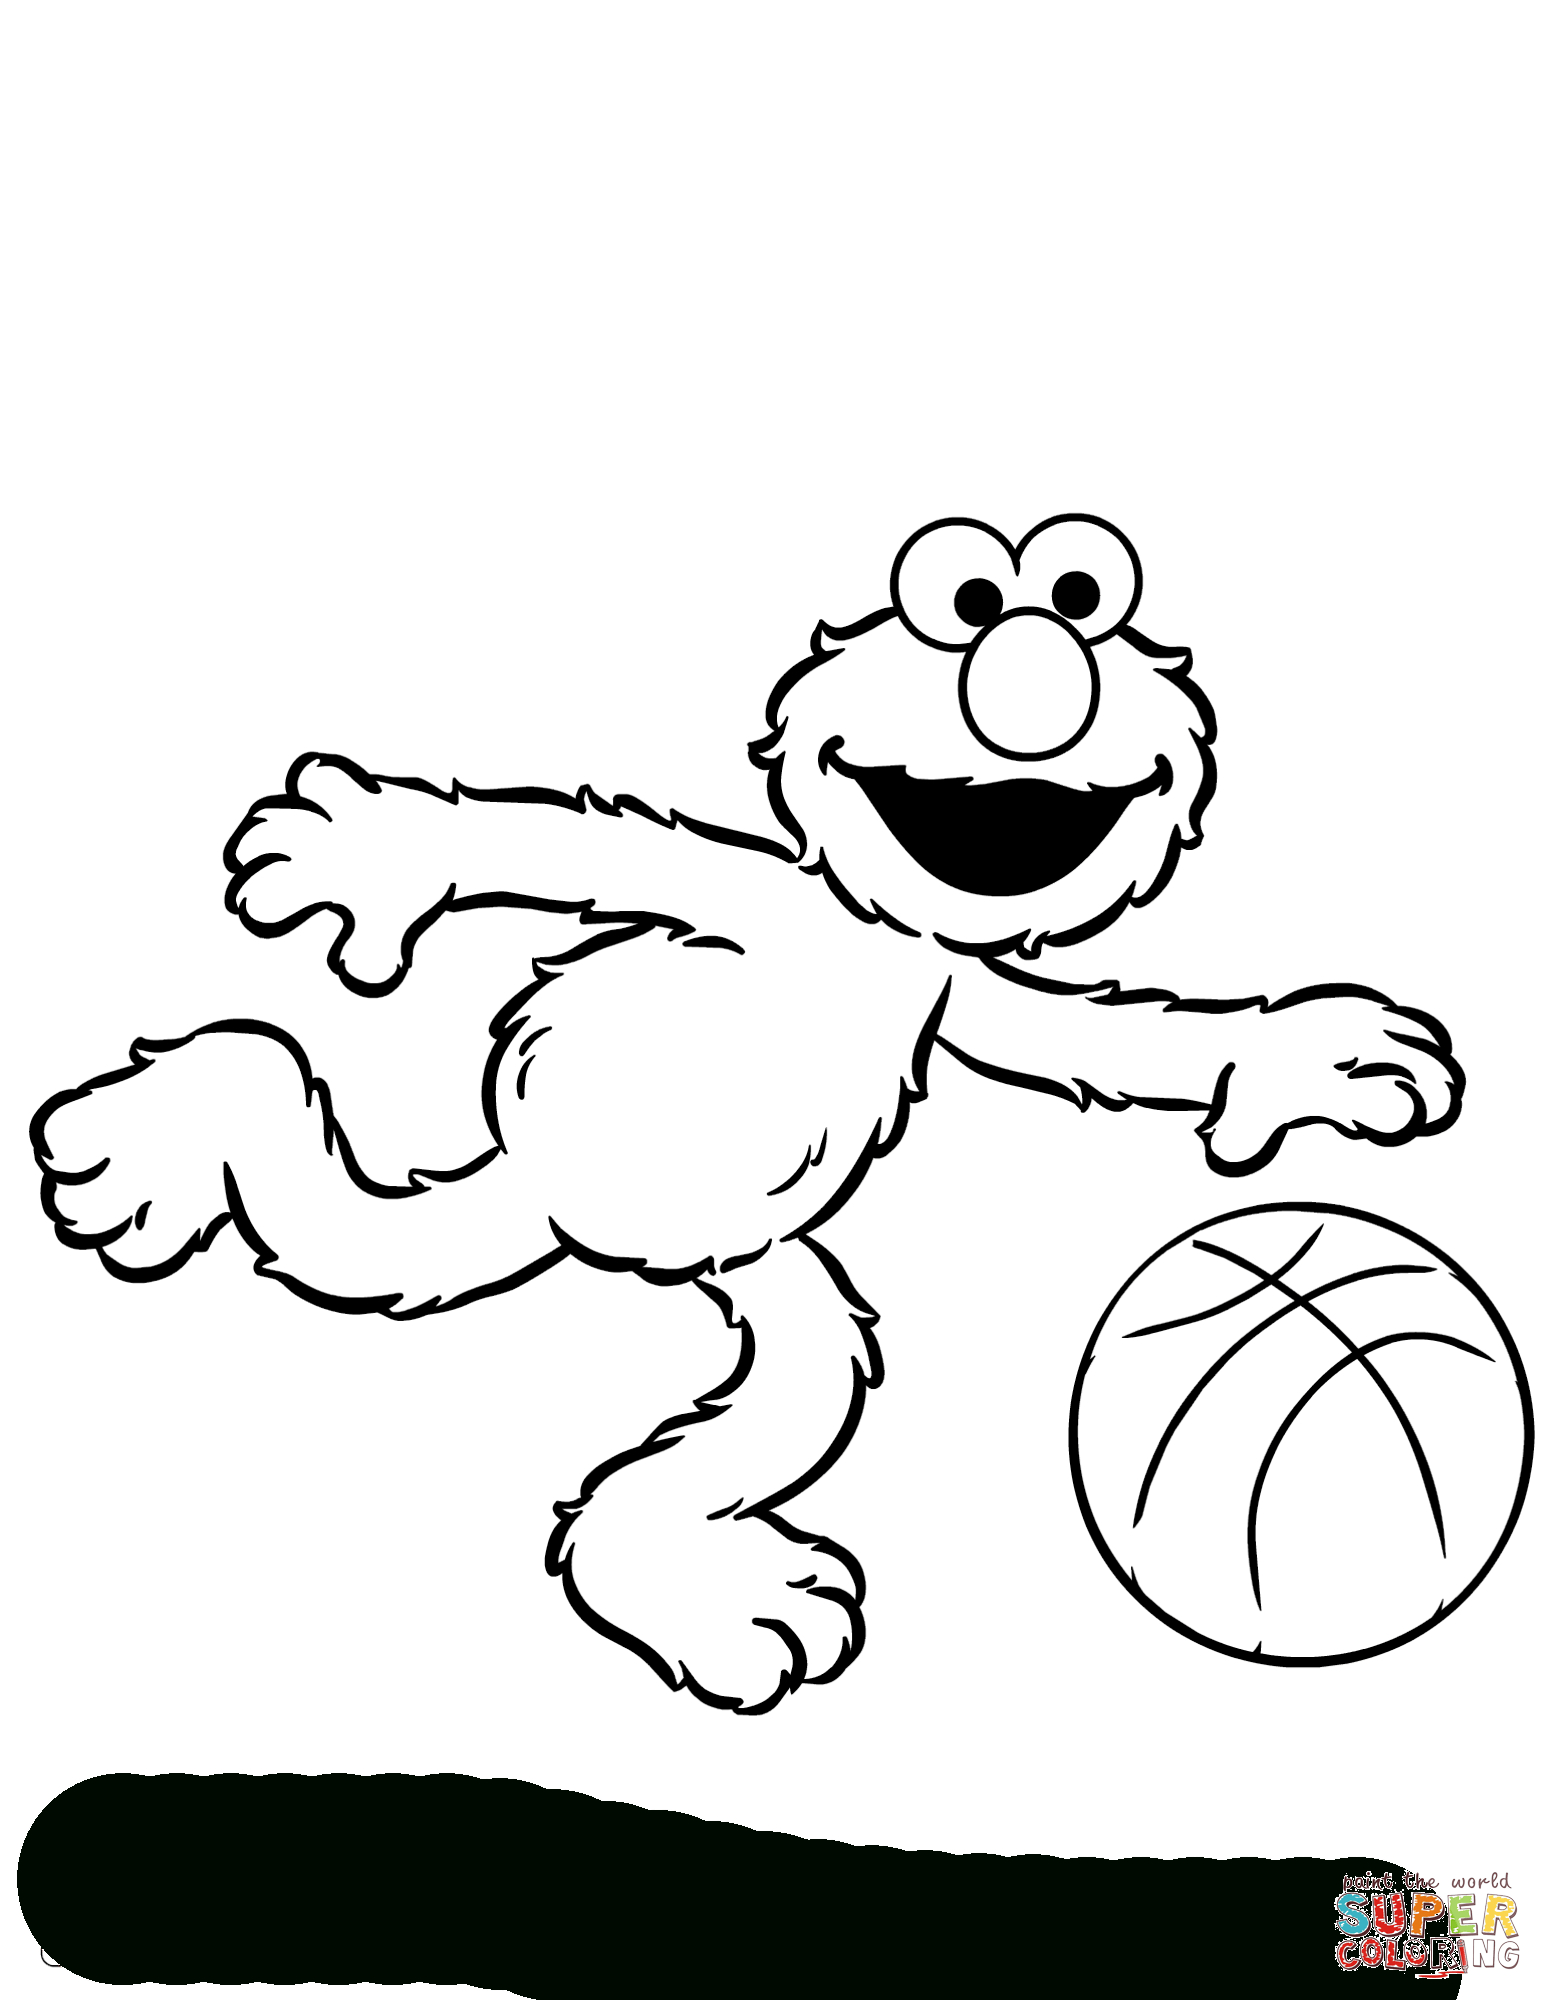 Elmo Plays Basketball Coloring Page | Free Printable Coloring Pages - Elmo Color Pages Free Printable